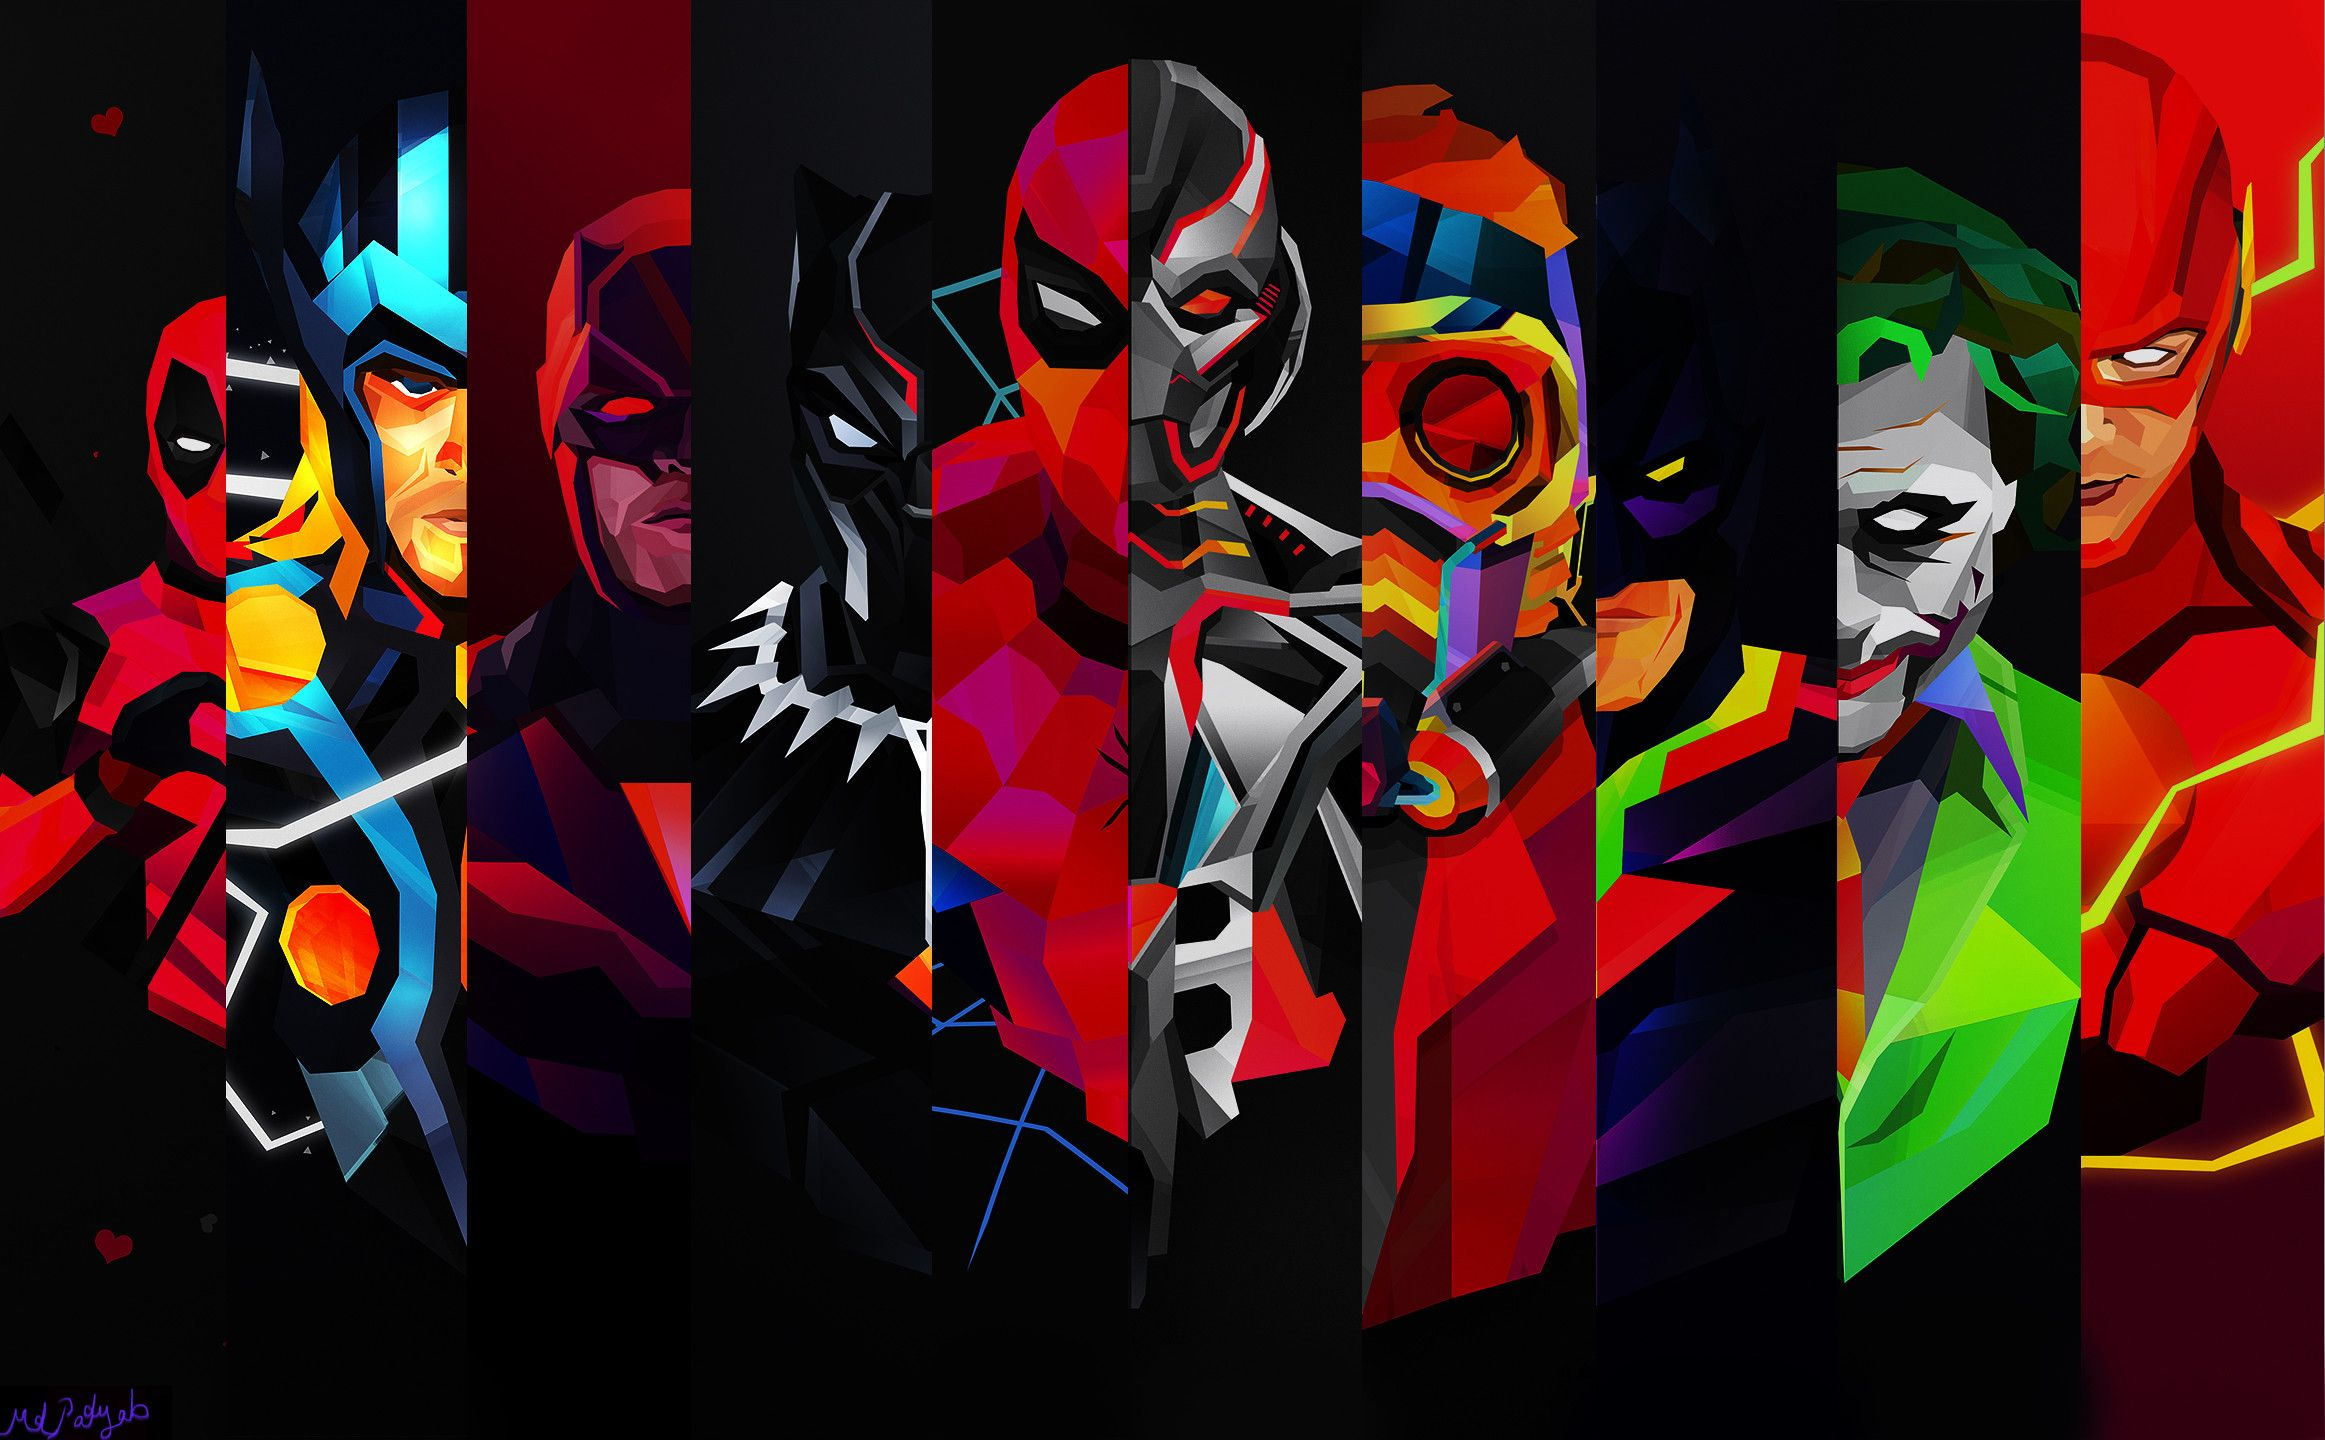 Abstract Superhero Wallpapers Top Free Abstract Superhero Backgrounds Wallpaperaccess